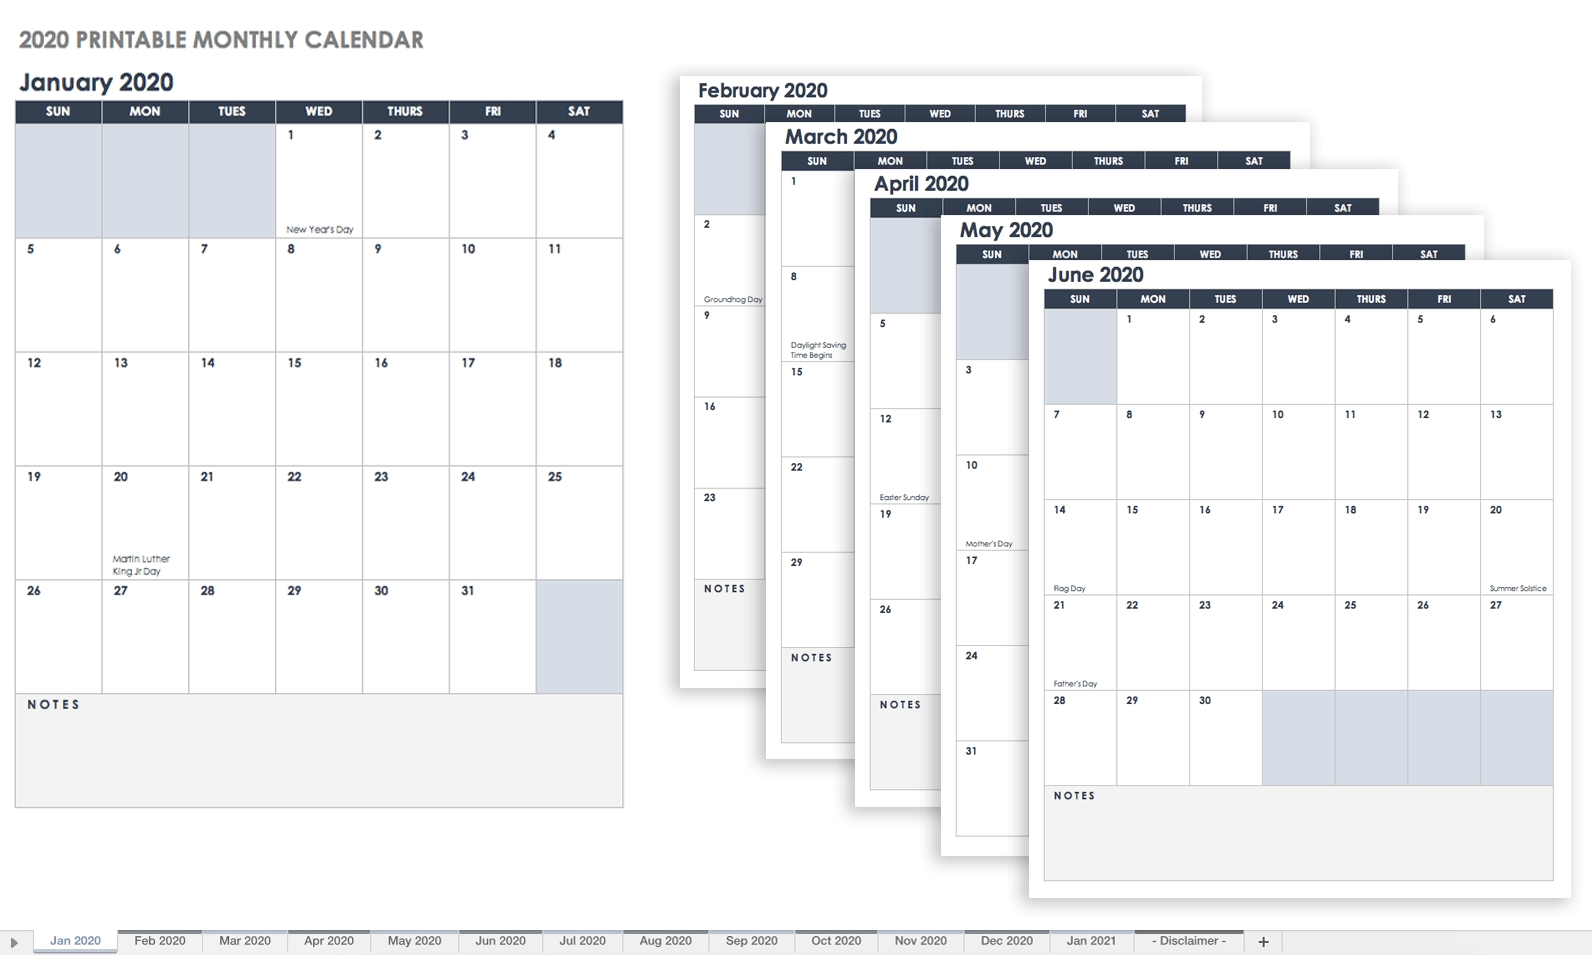 Schedule Template Nthly Calendar Excel Download South Africa Nth regarding Download A 3 Month Calendar